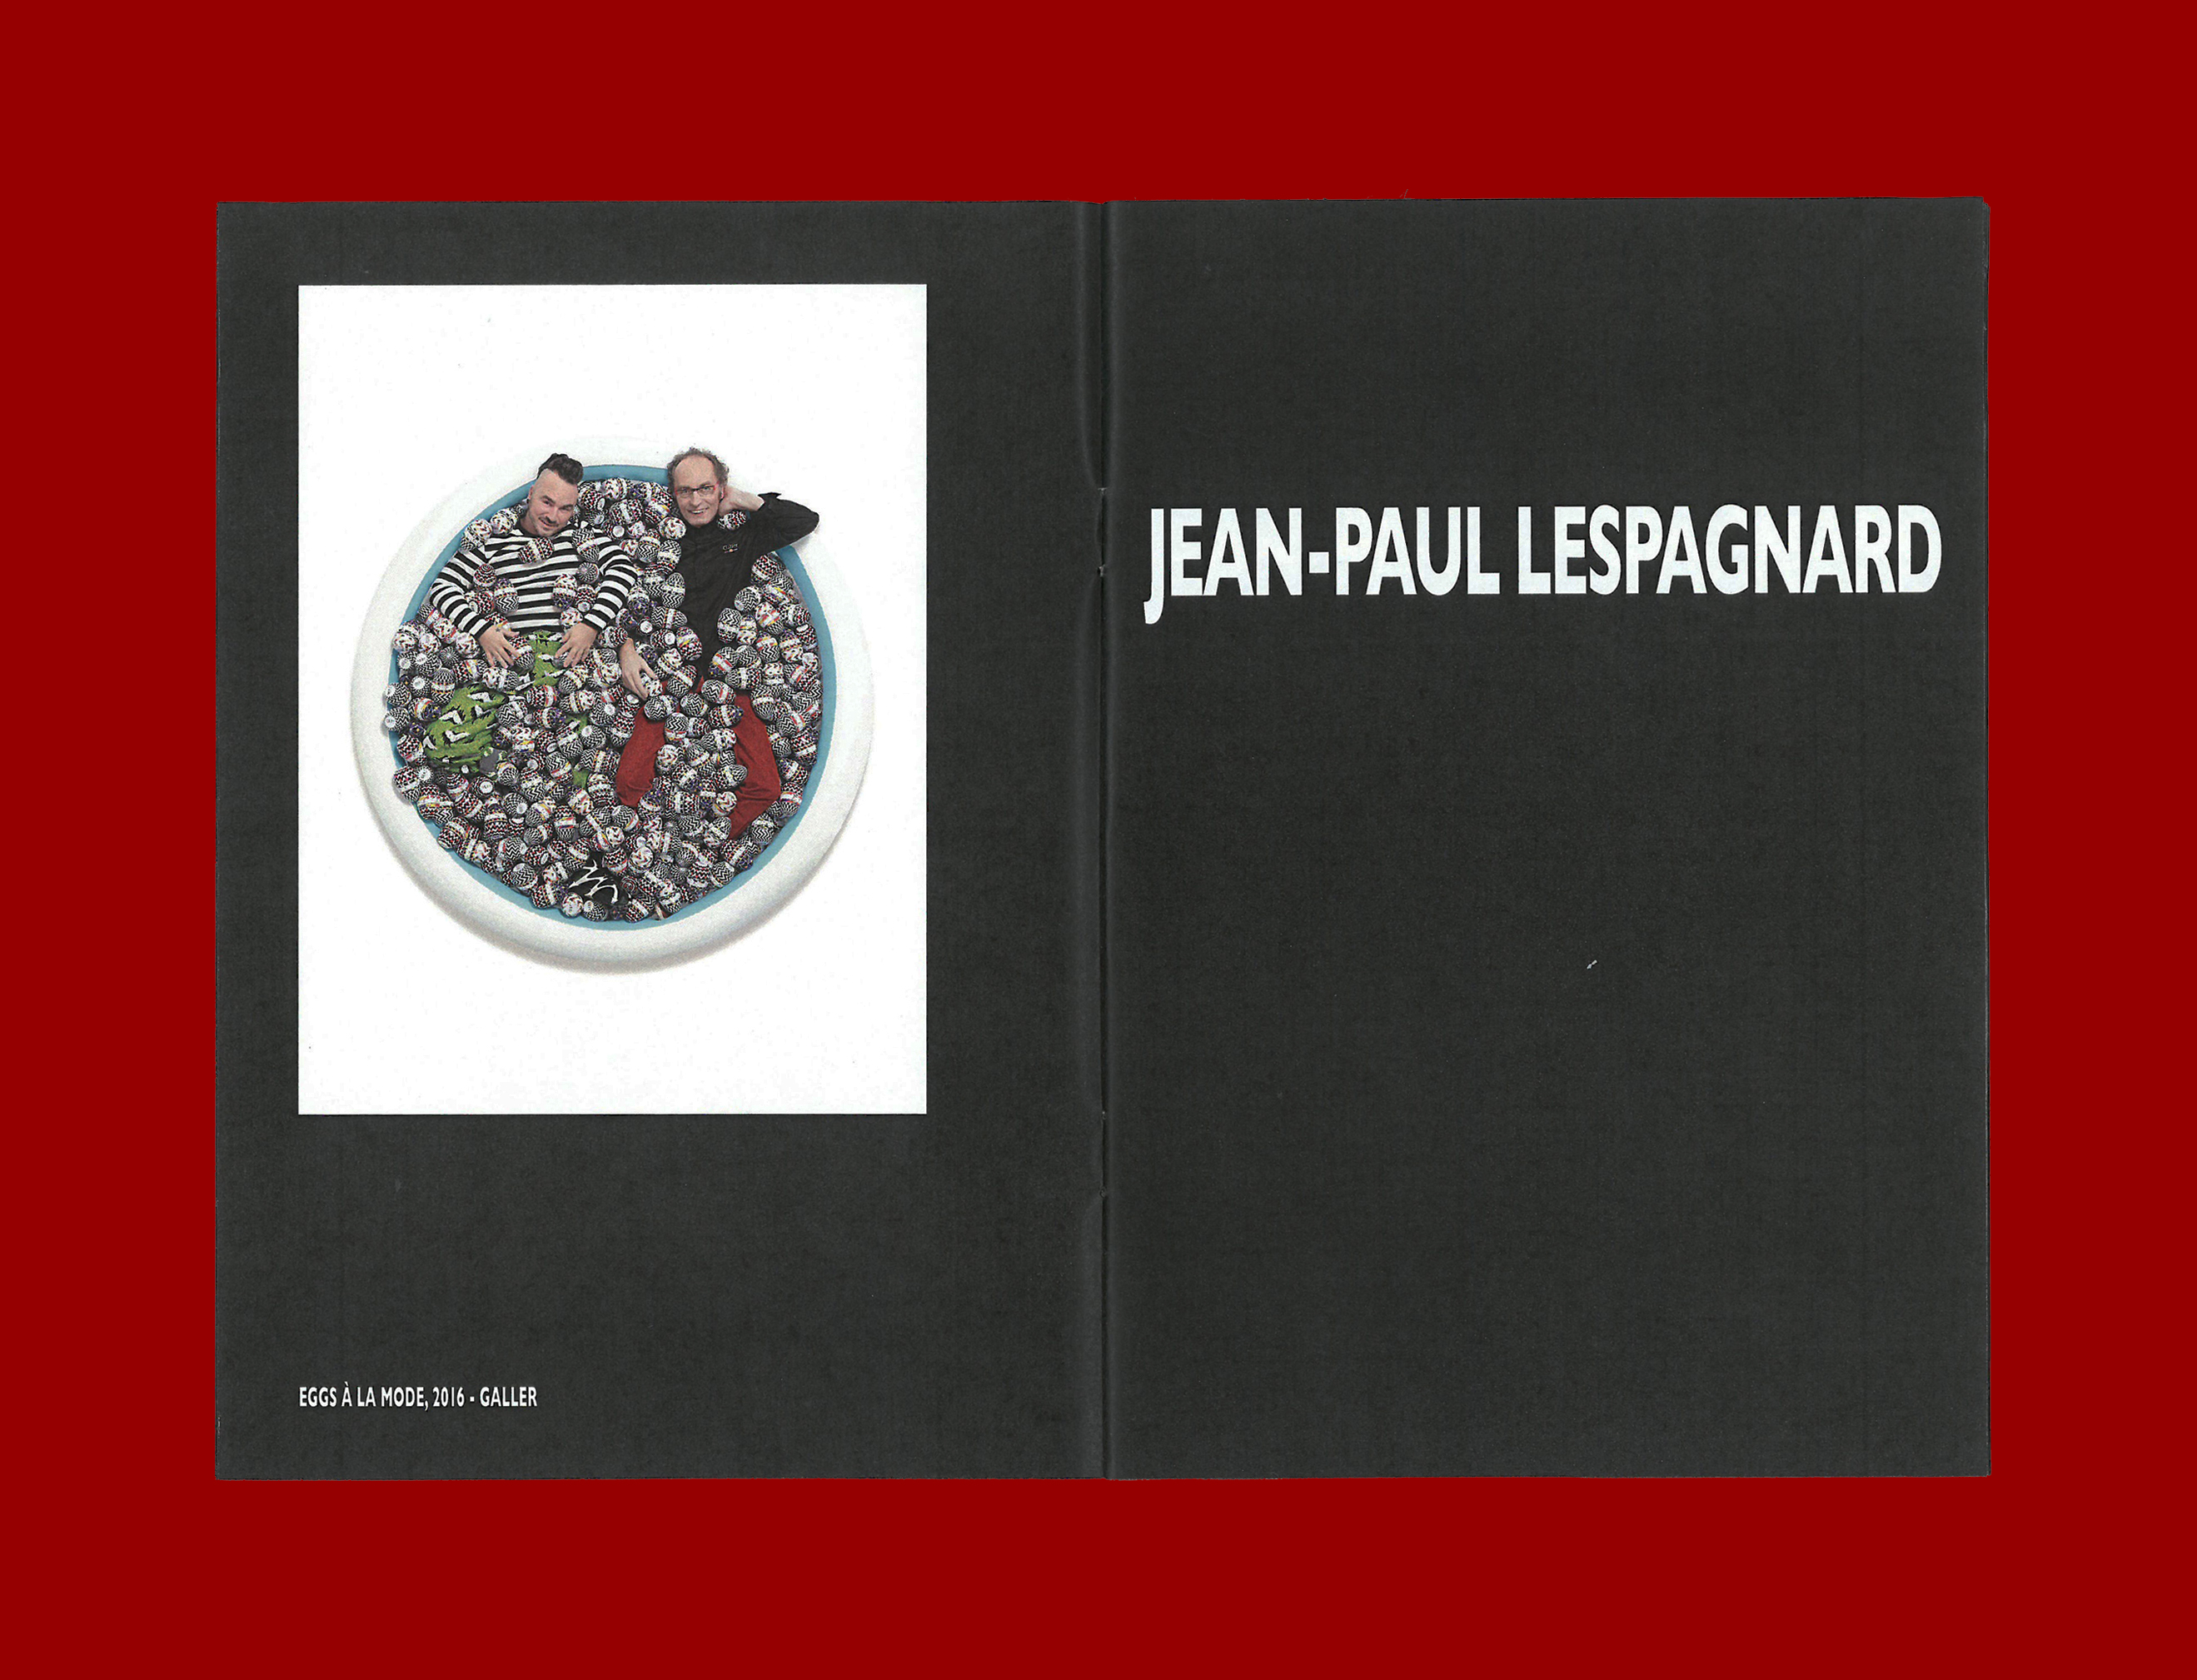 Printed Matter by Ron Wan. Fanzine: Breakfasttime, feautring Eggs A La Mode by Jean-Paul Lespagnard with Galler